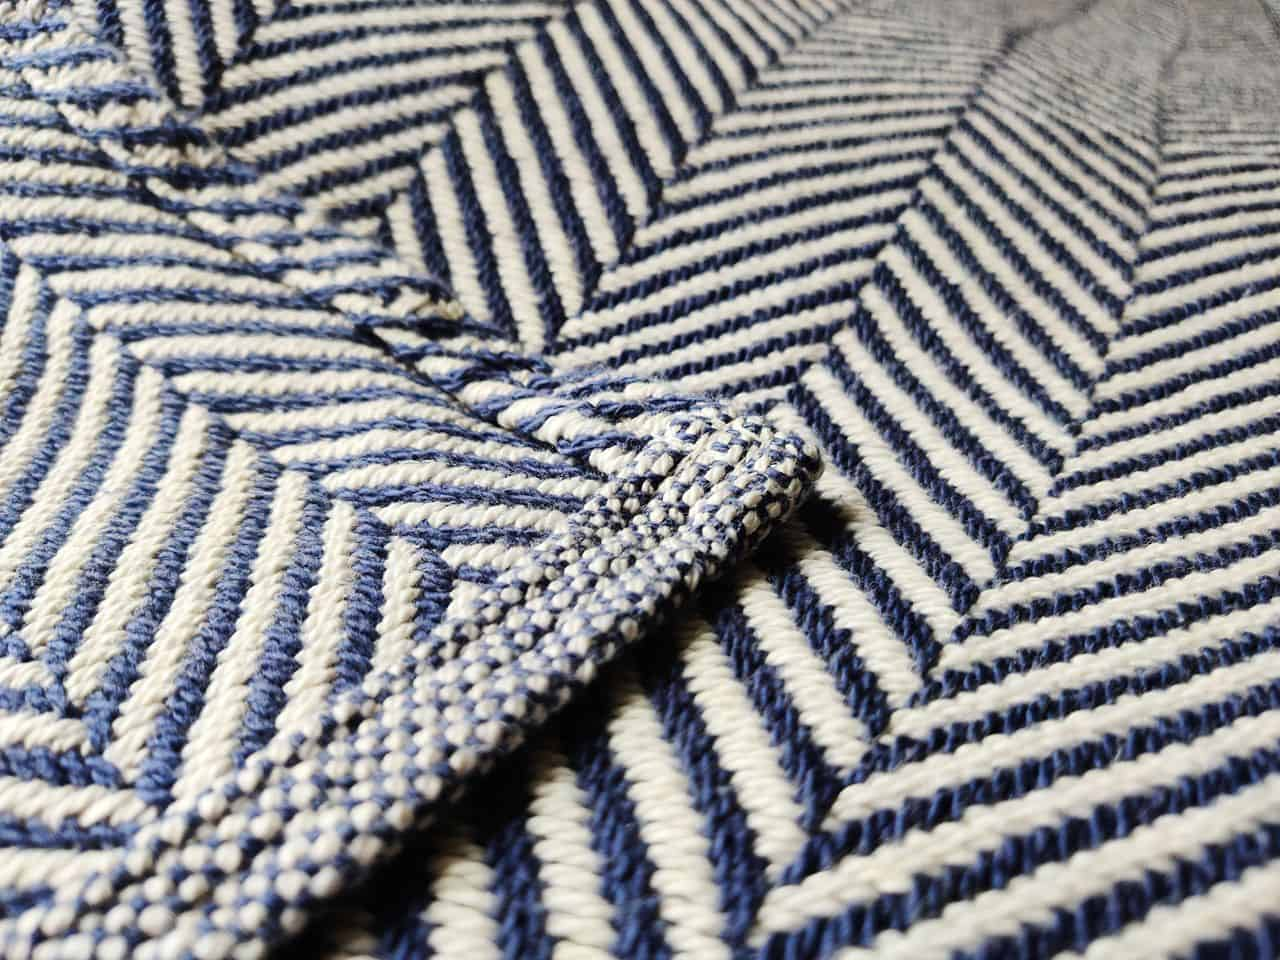 woven blanket up close